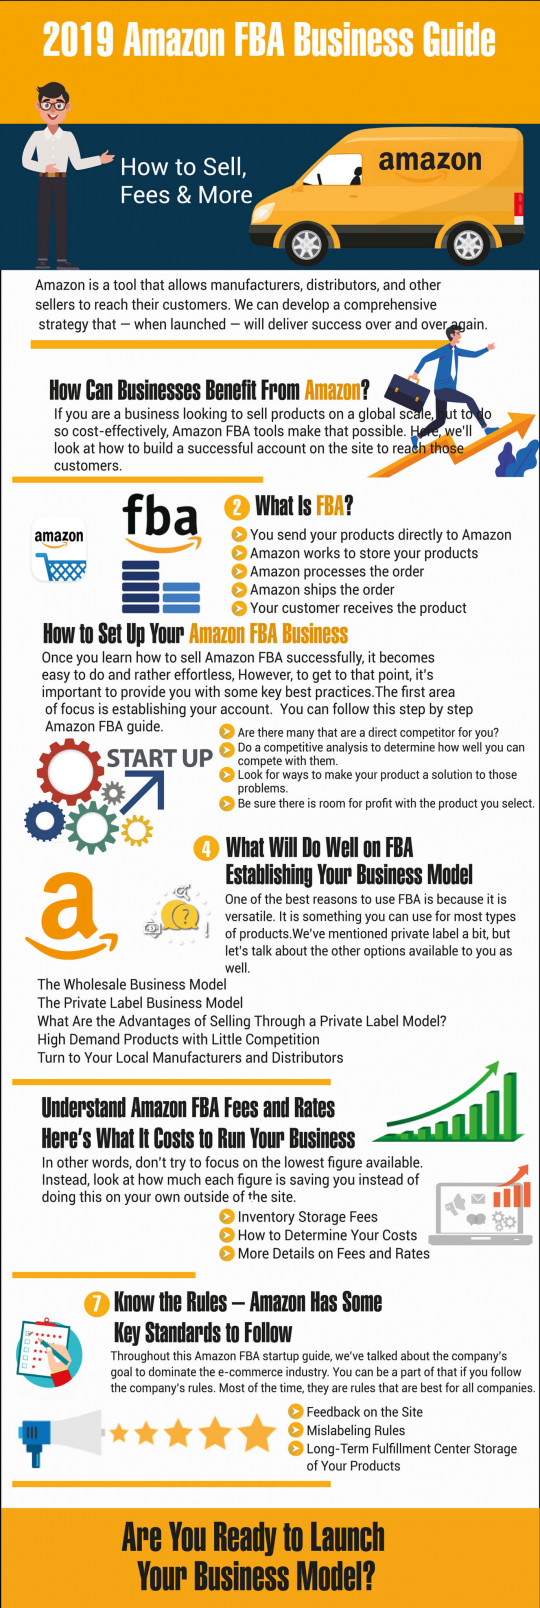 2019 Amazon FBA Business Guide: How to Sell, Fees & More